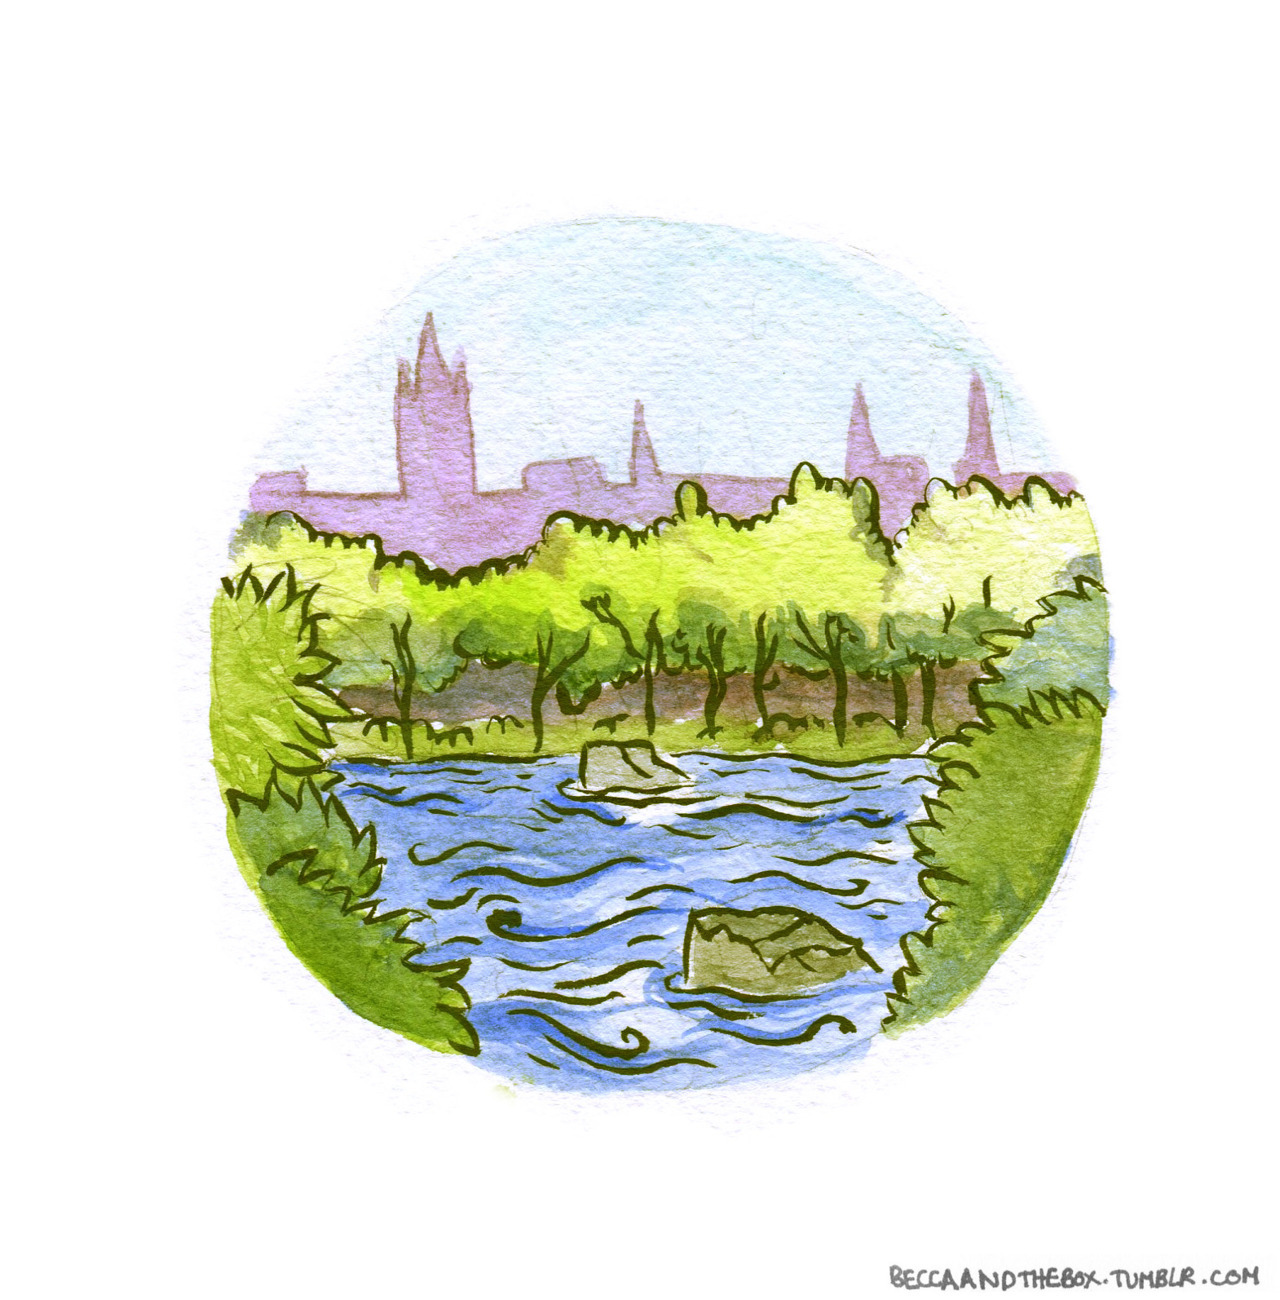 A tiny picture of Kelvingrove Park. In this weather I've been living there under the trees.